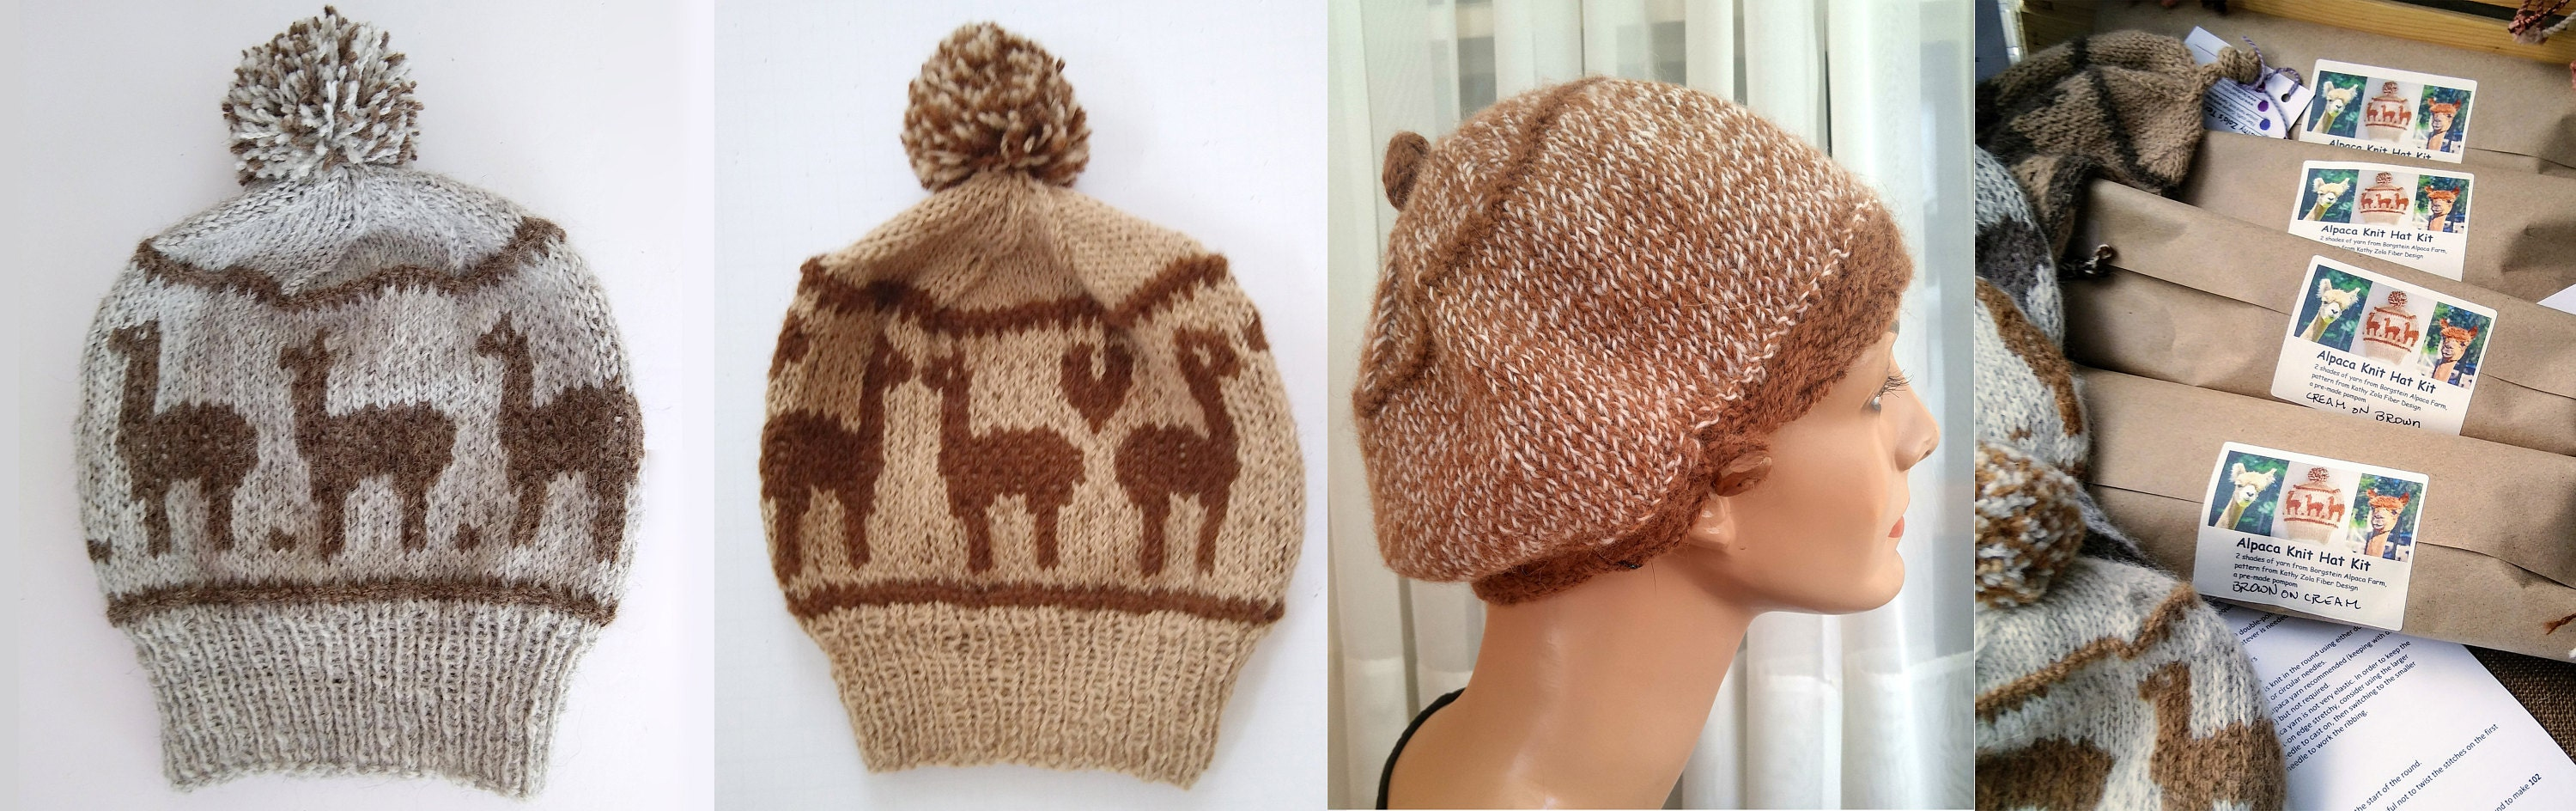 Sample Borgstein alpaca products in my shop